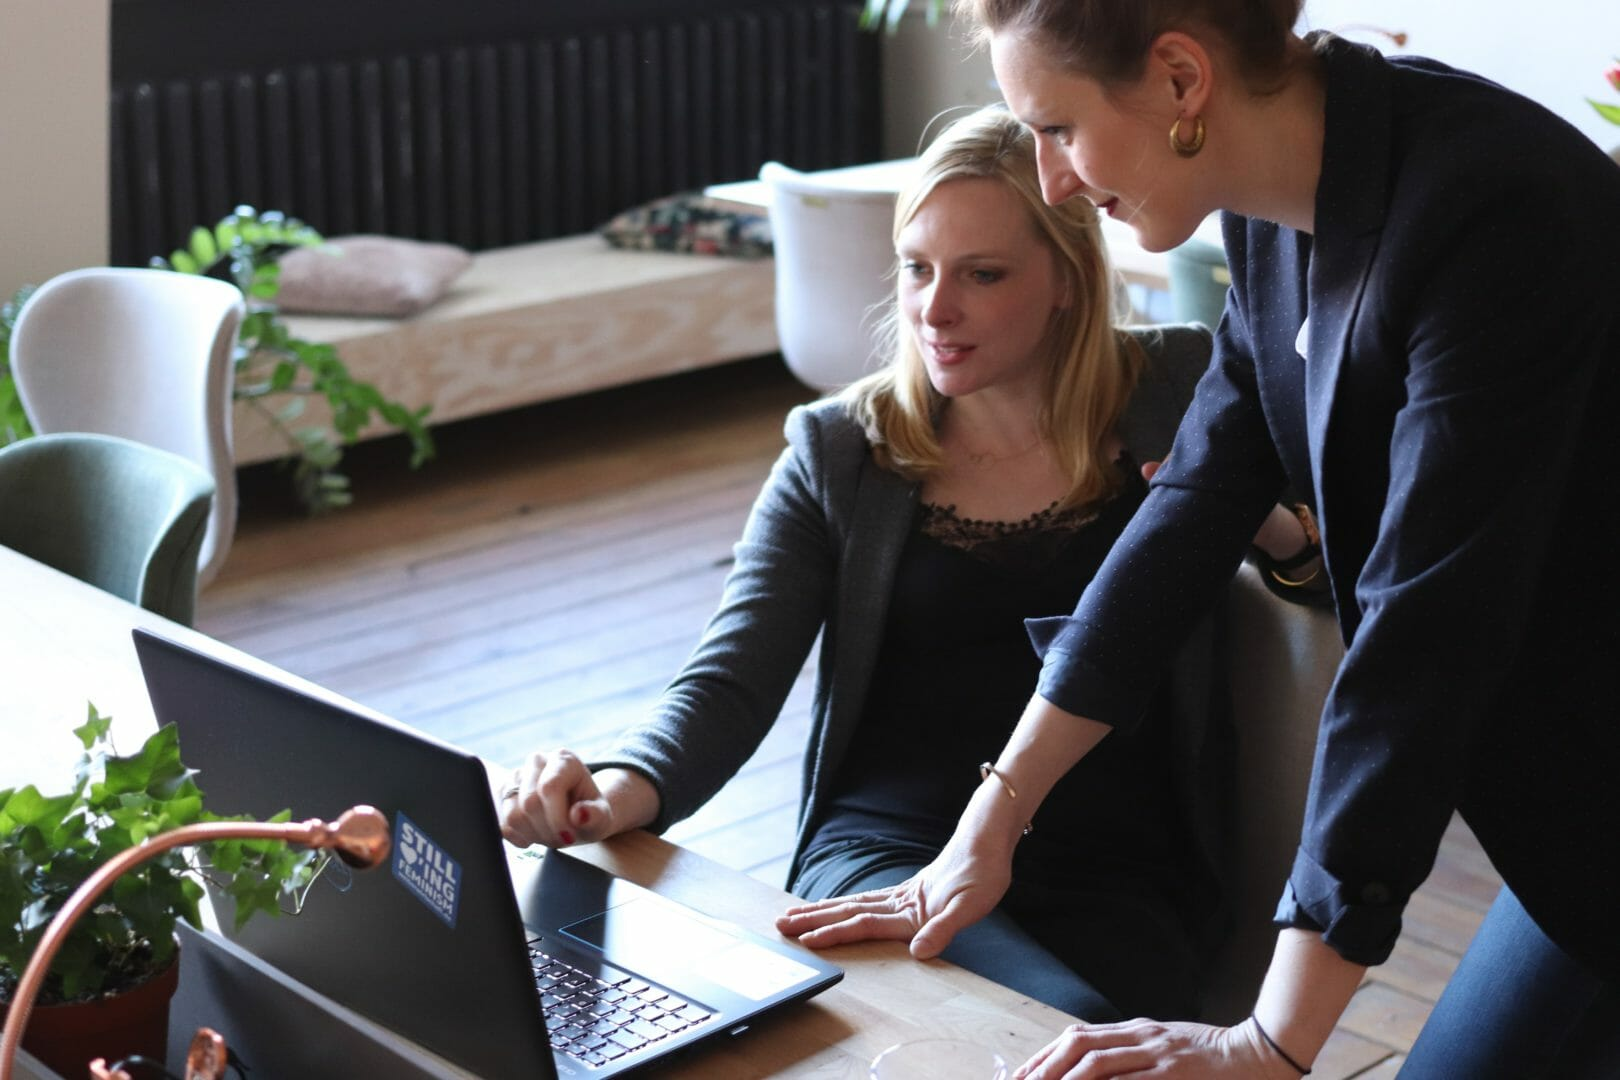 two Women dressed formally looking at laptop